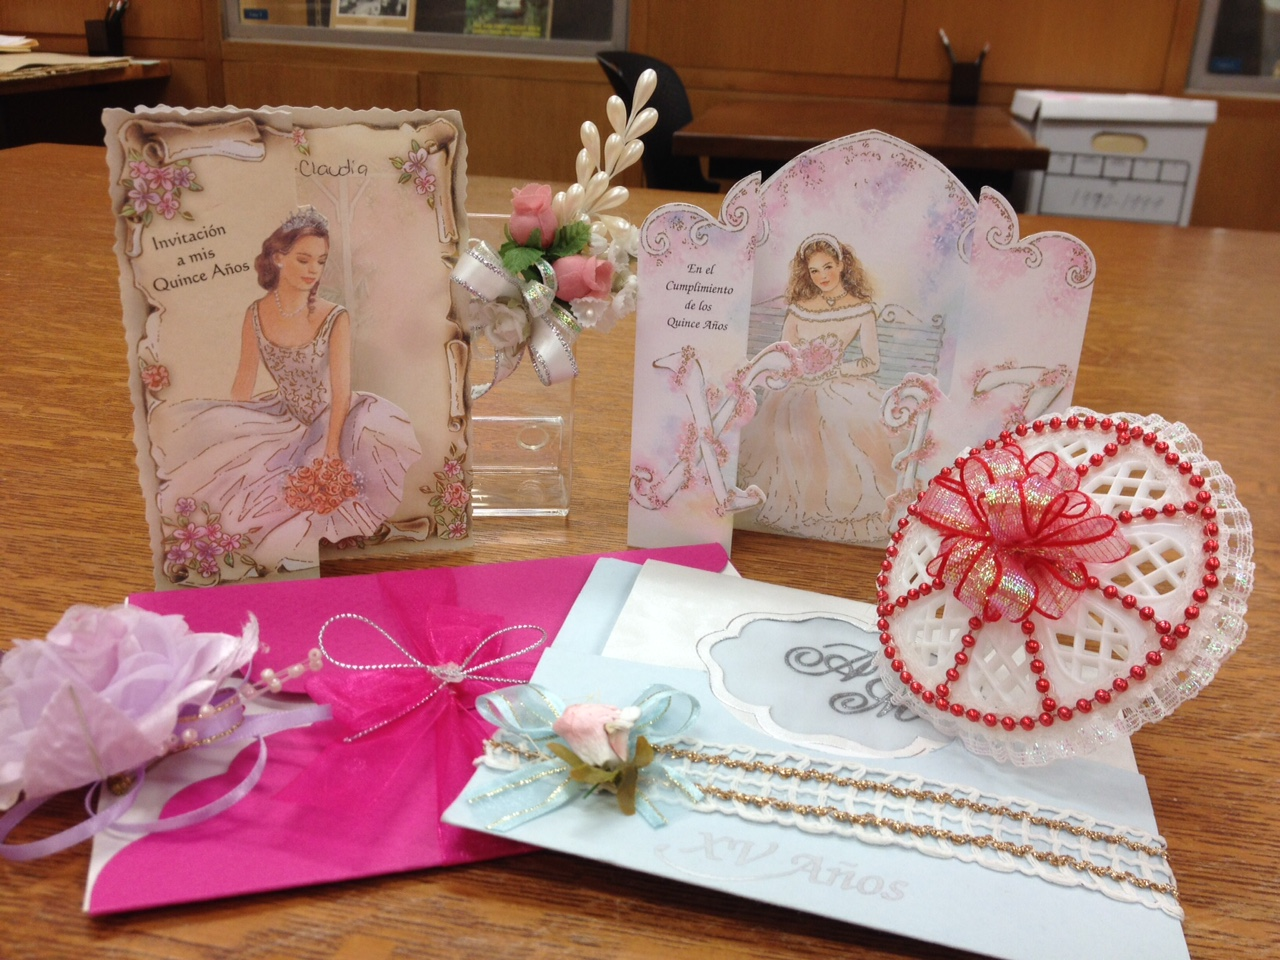 A group of quinceaneras invitations.